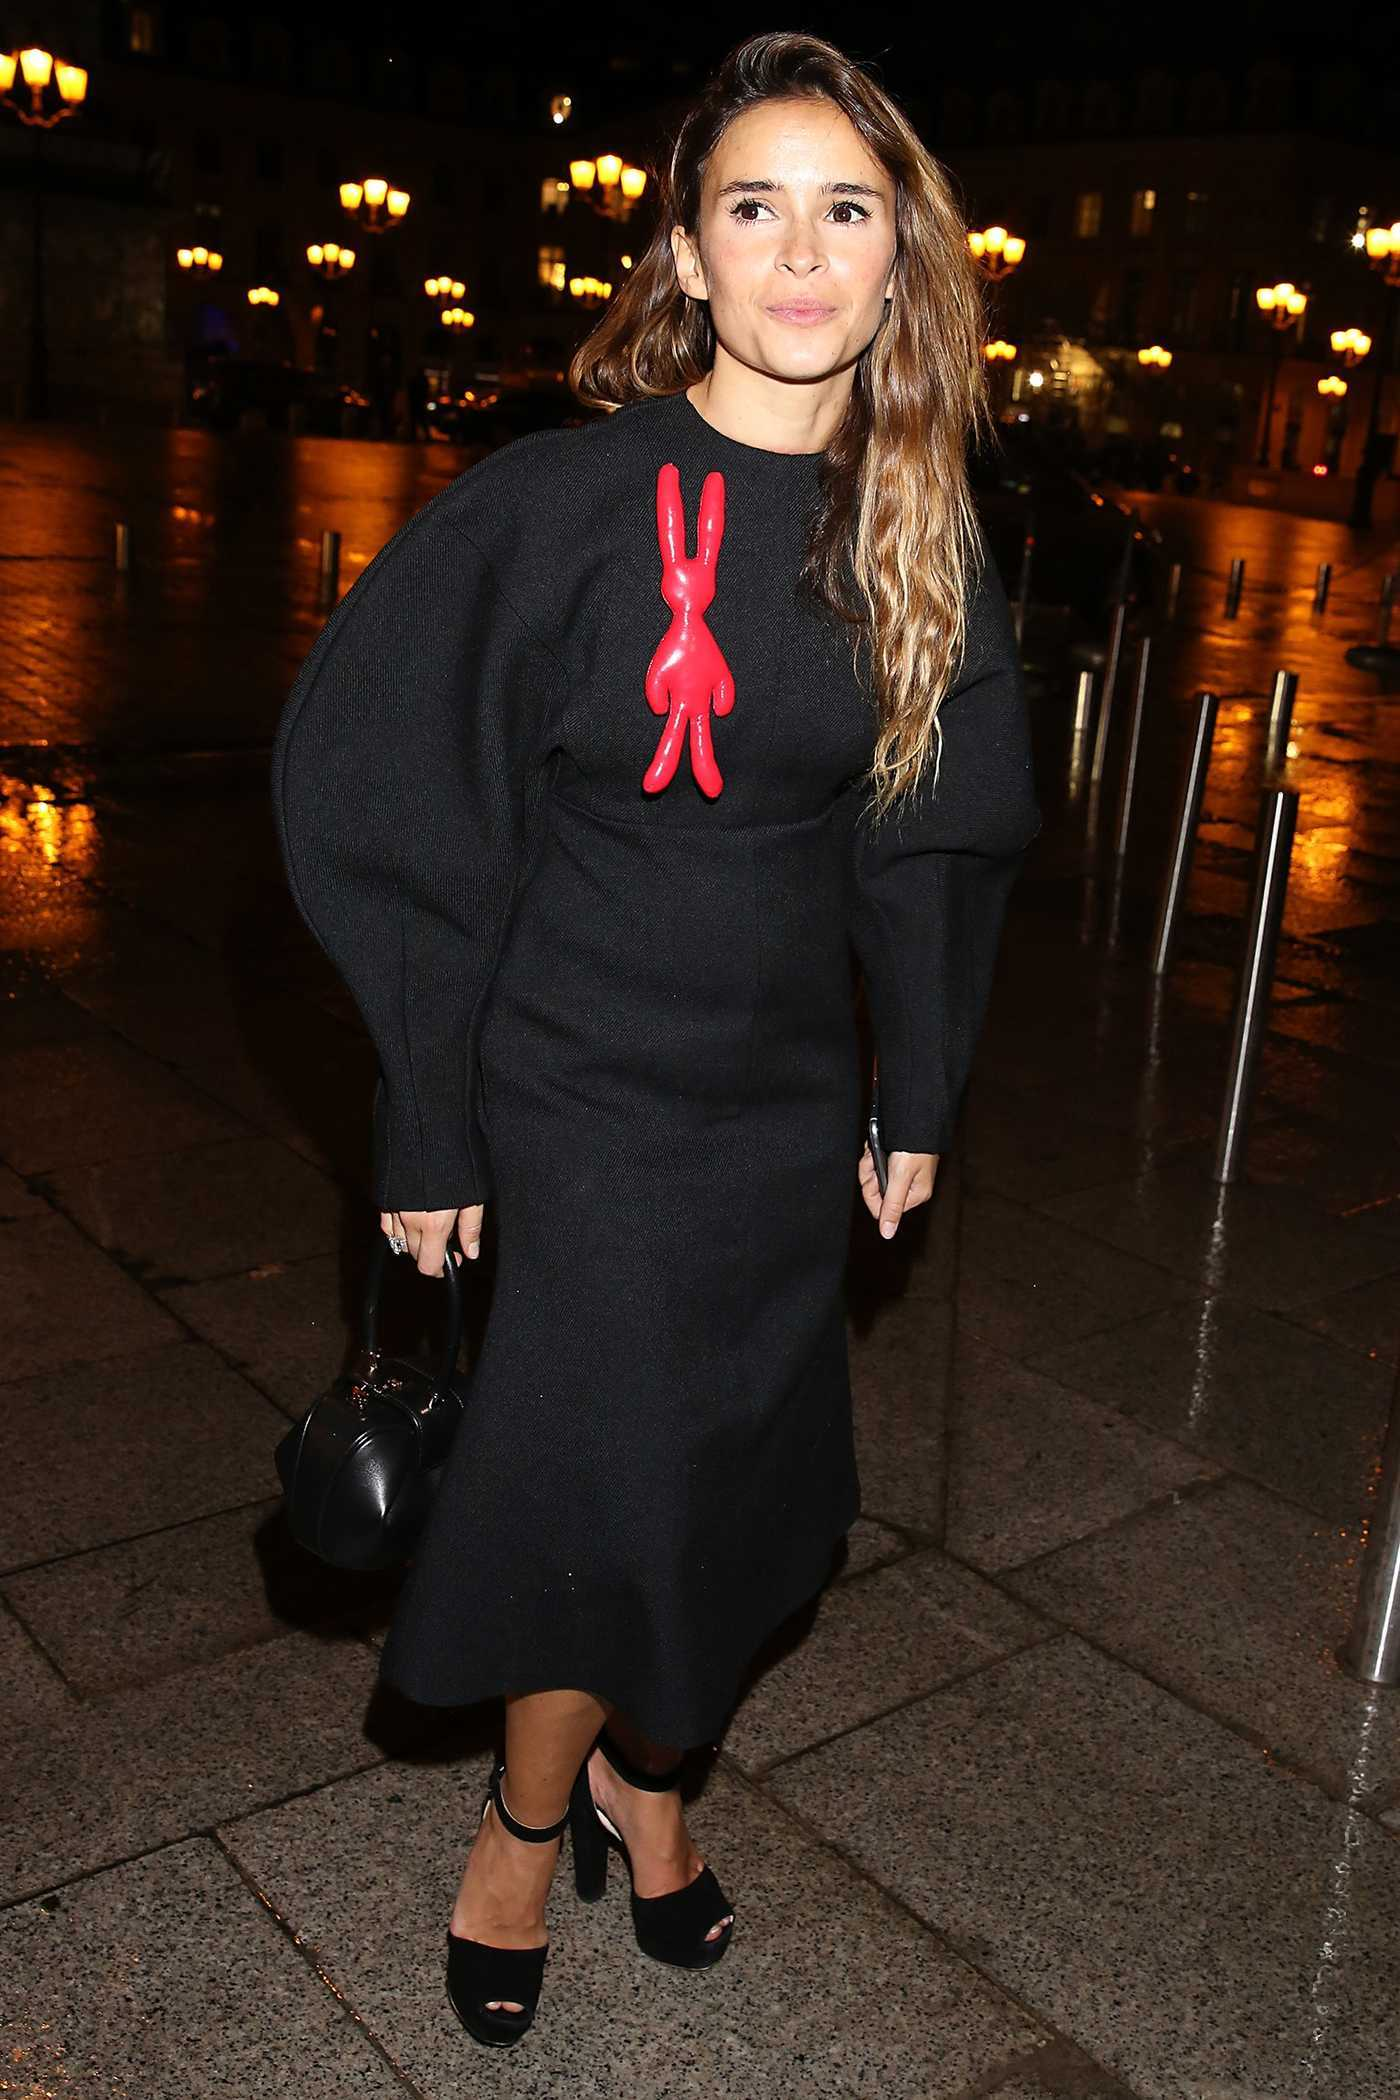 Miroslava Duma Leaves the Ritz Hotel in Paris 09/30/2016